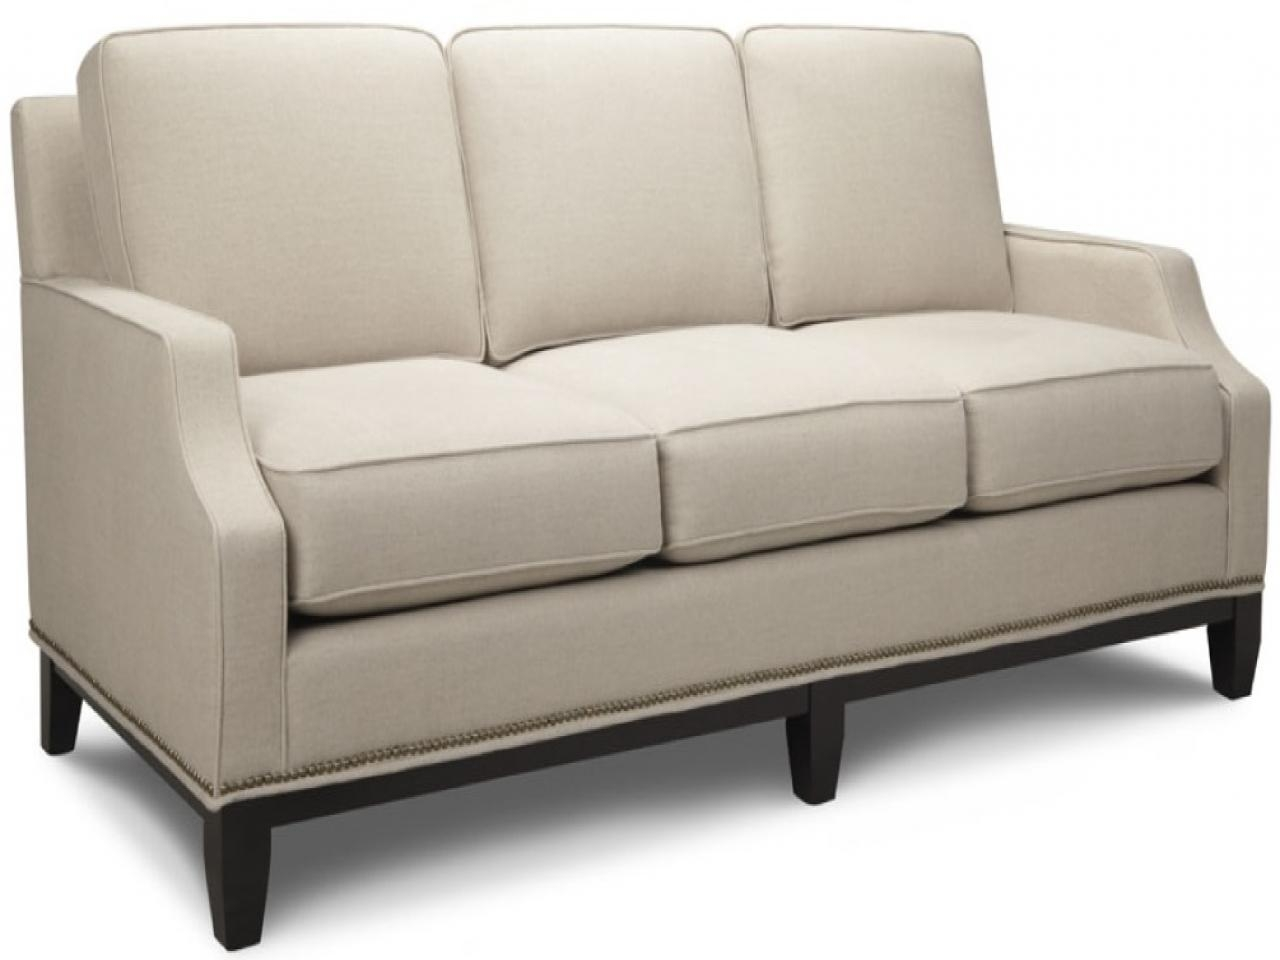 Sofas Center : Sectional Pit Sofa Unusual Images Inspirations For Unusual Sofas (View 17 of 20)